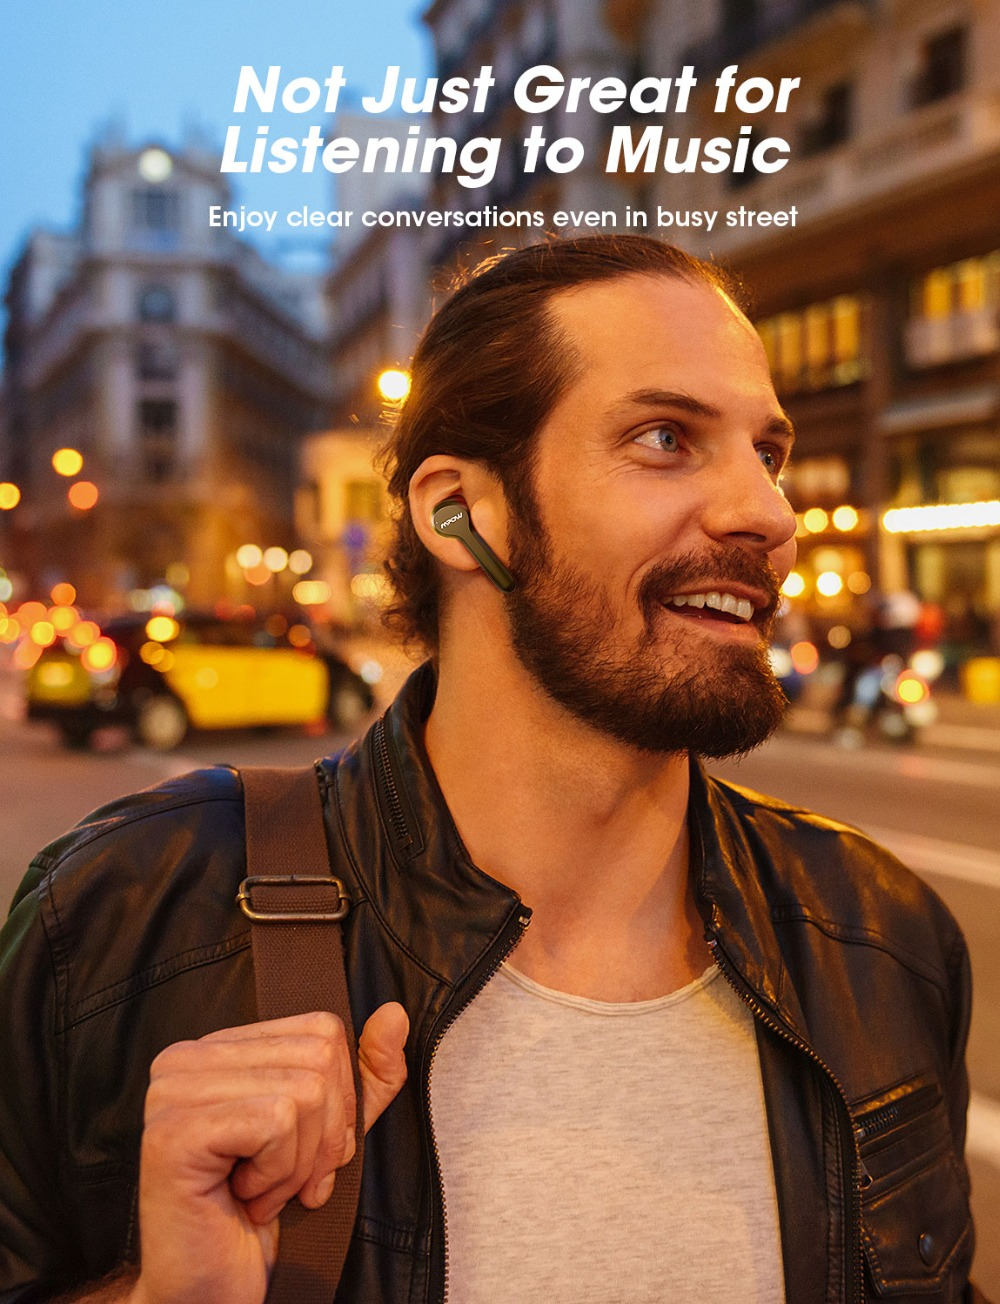 Mpow M9 TWS Earbuds True Wireless Bluetooth 5.0 Headphone IPX7 Waterproof Earphone With Charging Case 30H Playtime For iPhone 11 PK SoundPEATS TWS Earbuds (6)